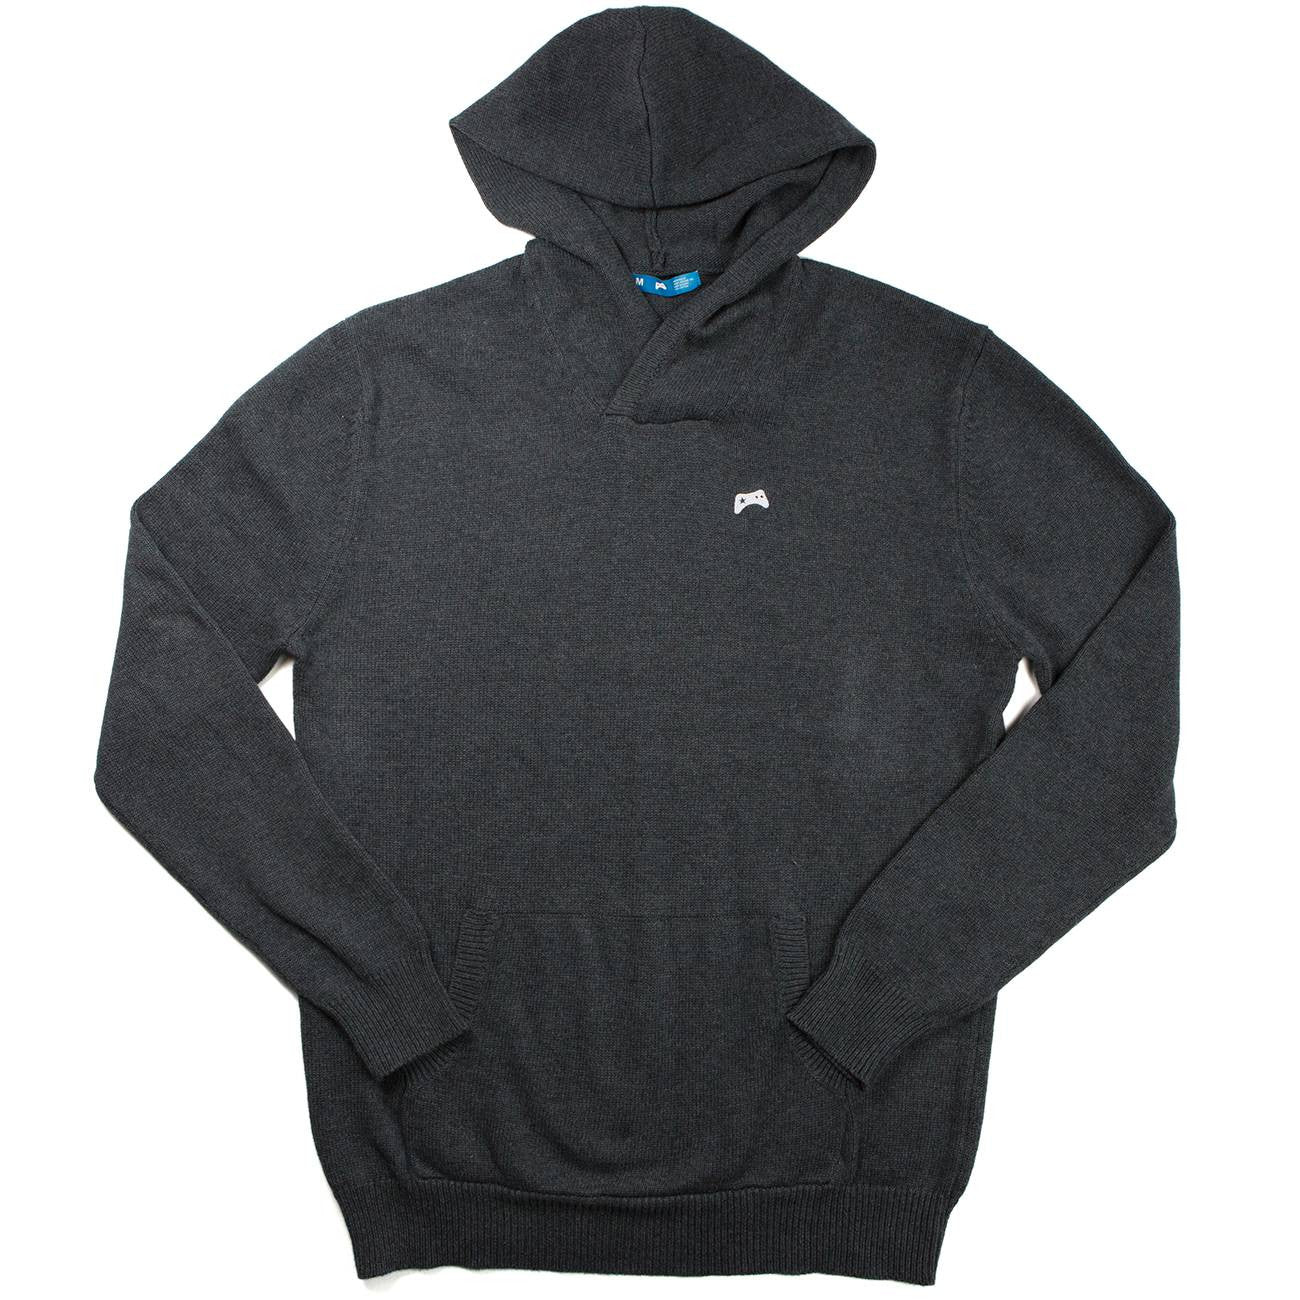 V1.0 Hooded Sweater